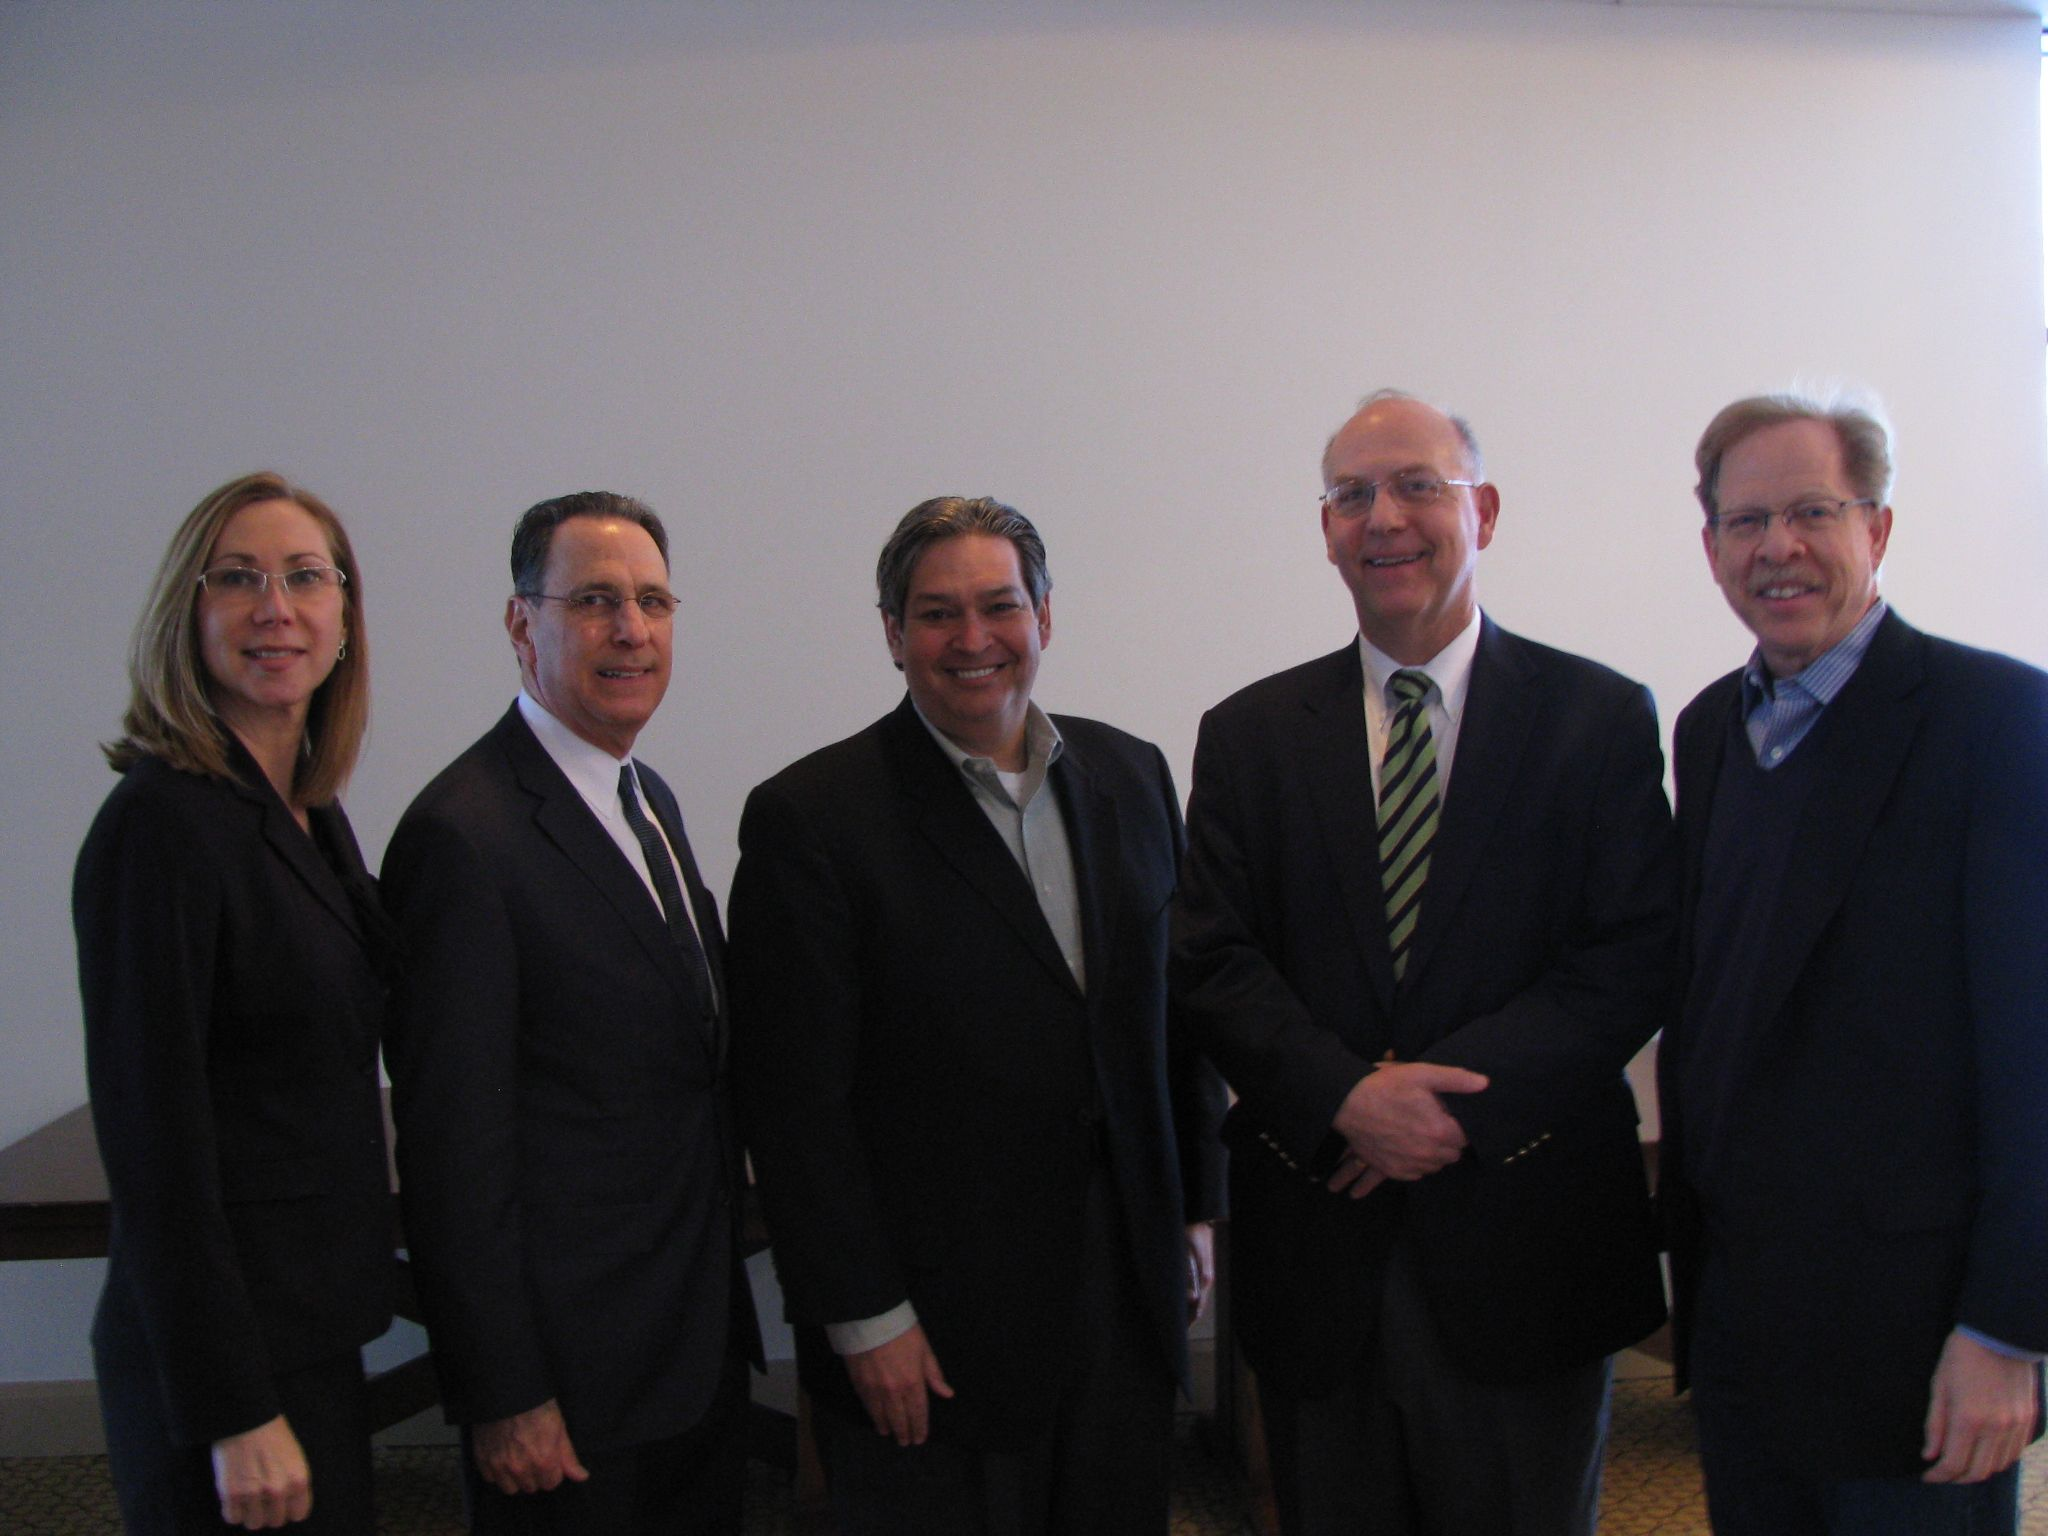 In January of 2011 Andy spoke to the workers' compensation section of the Michigan Advocates of Justice. After speaking to the entire section, he posed with a few of the other speakers. Pictured: Lisa Welton, Joel Alpert, Richard Warsh, Andy Reinhardt, and Murray Gorchow.